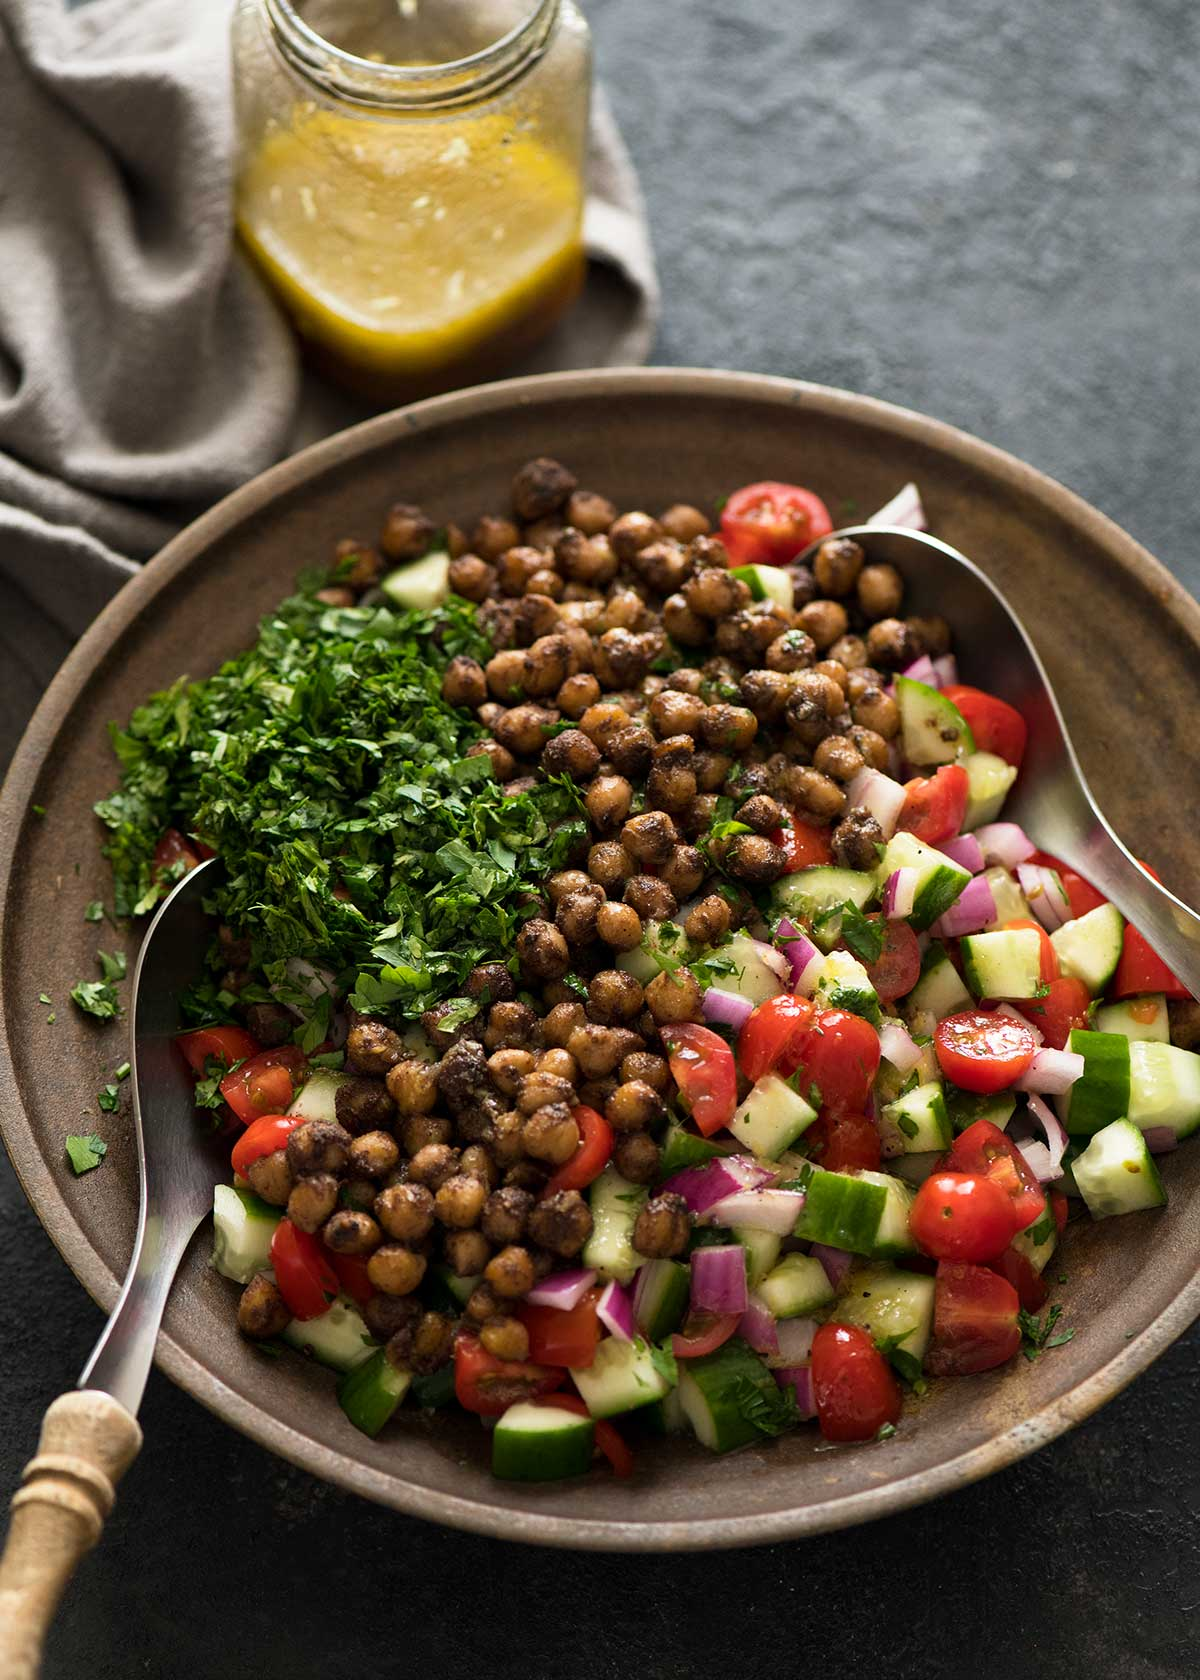 Middle Eastern Chickpea Salad from RecipeTin Eats